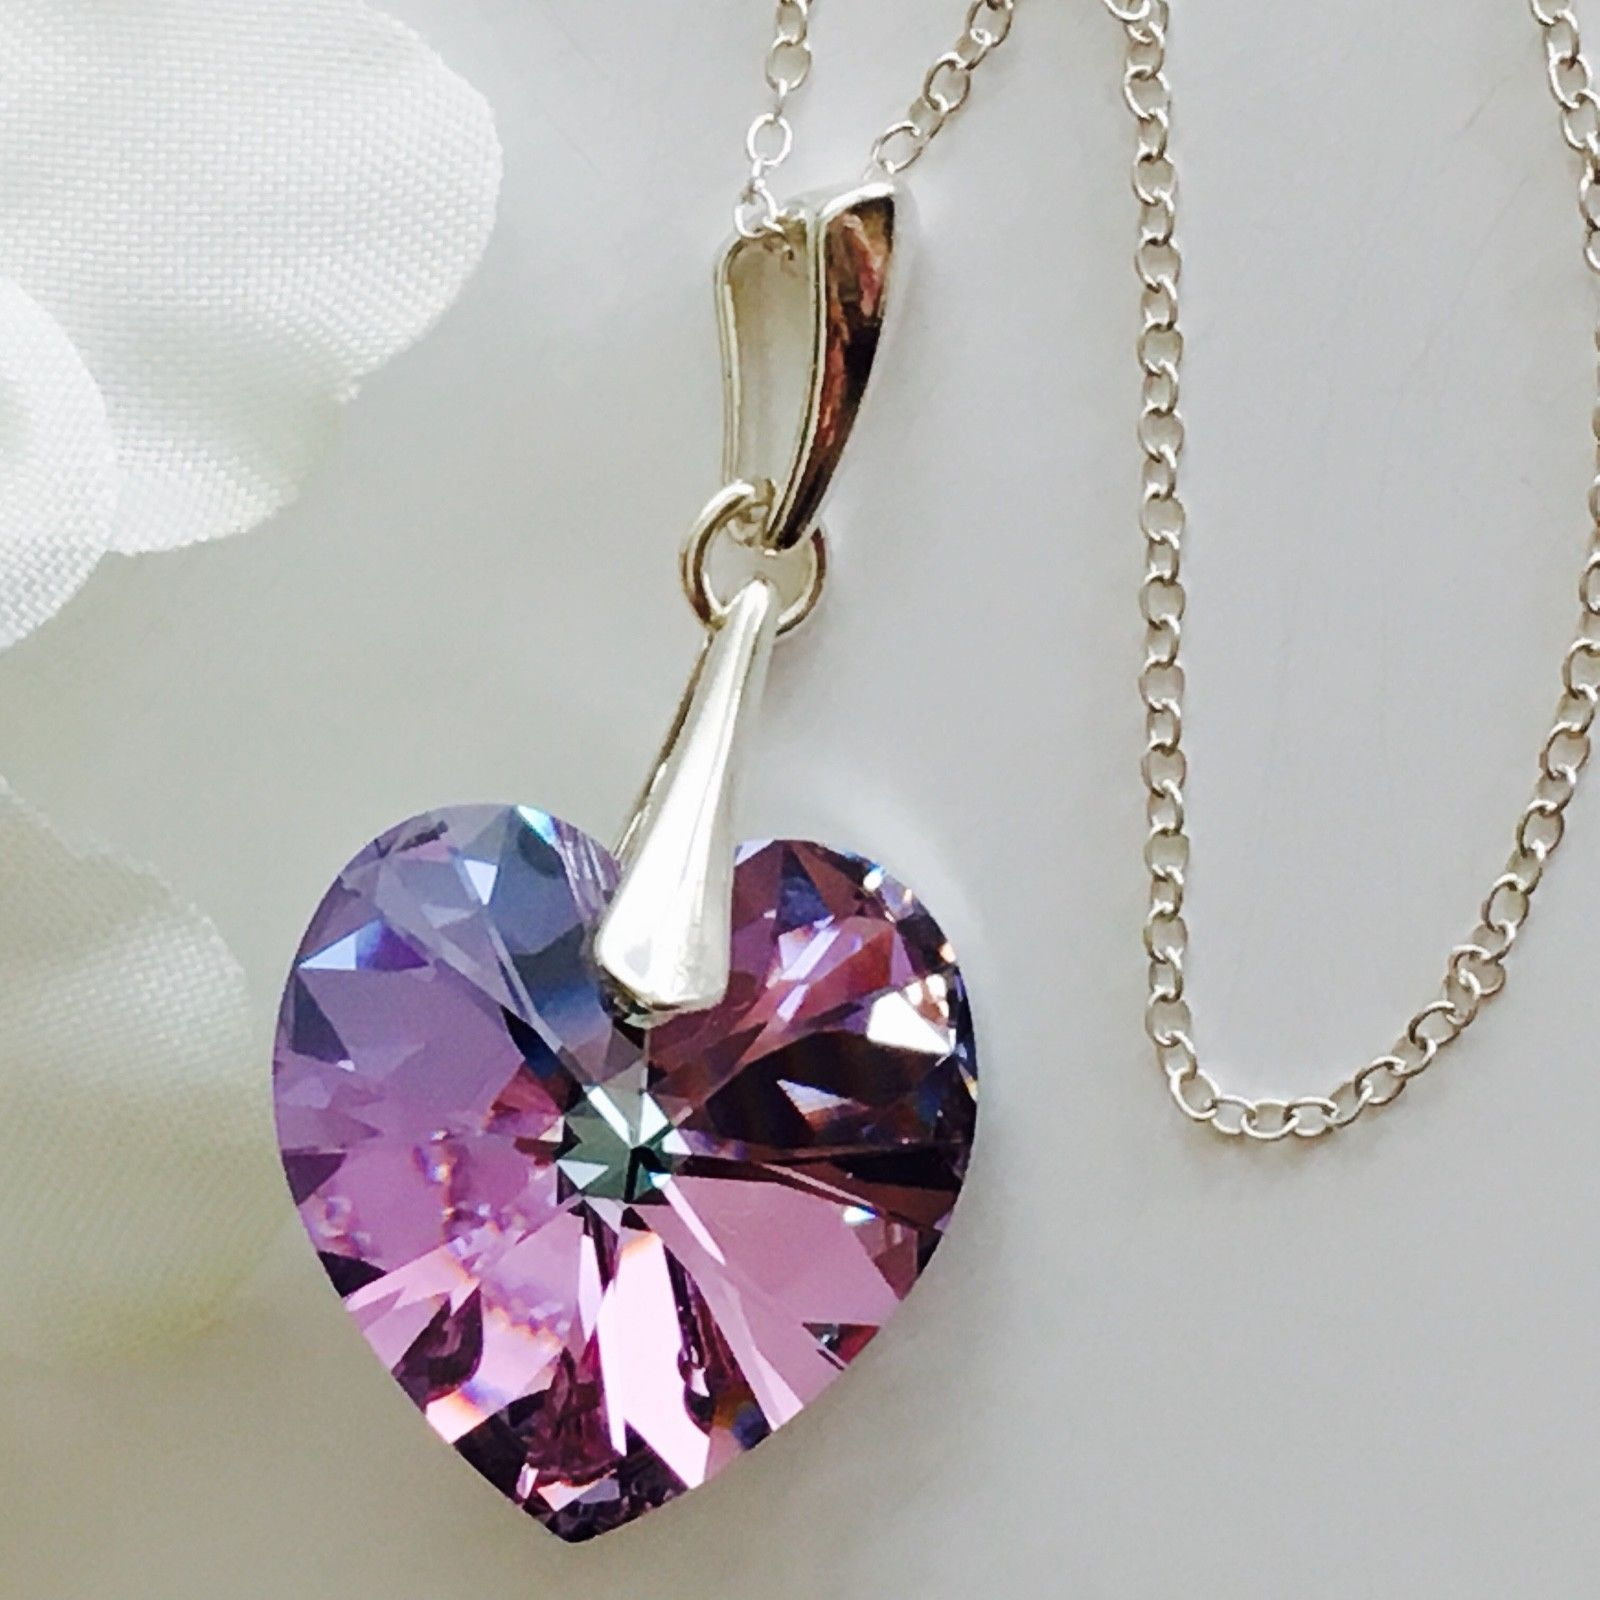 95ca7904acbe Swarovski Elements Vitrail Light Heart